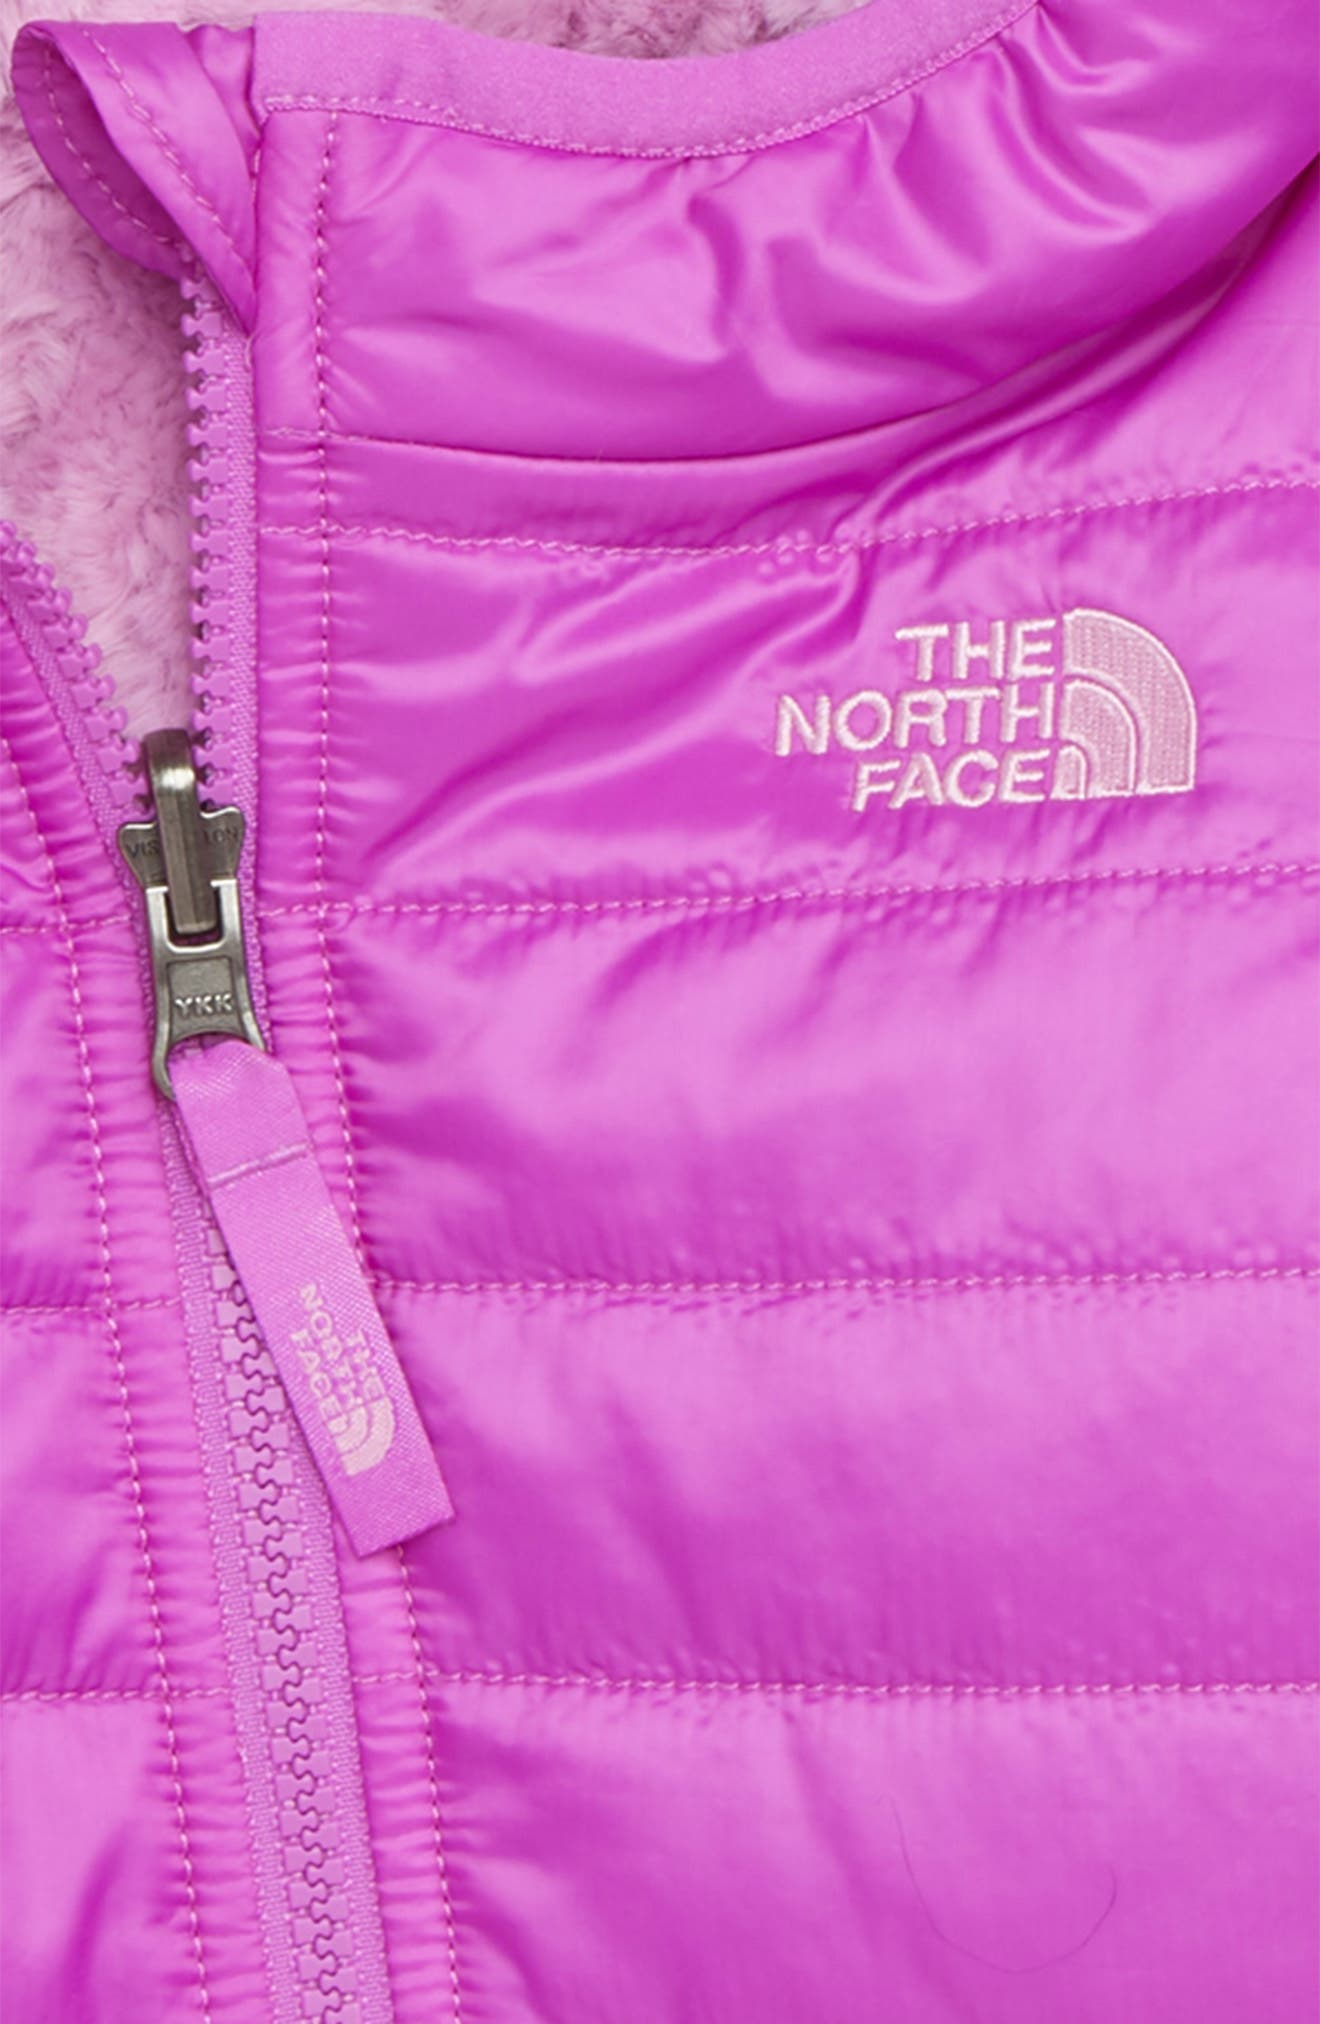 THE NORTH FACE,                             Mossbud Reversible Water Repellent Heatseeker<sup>™</sup> Insulated Jacket,                             Alternate thumbnail 3, color,                             510